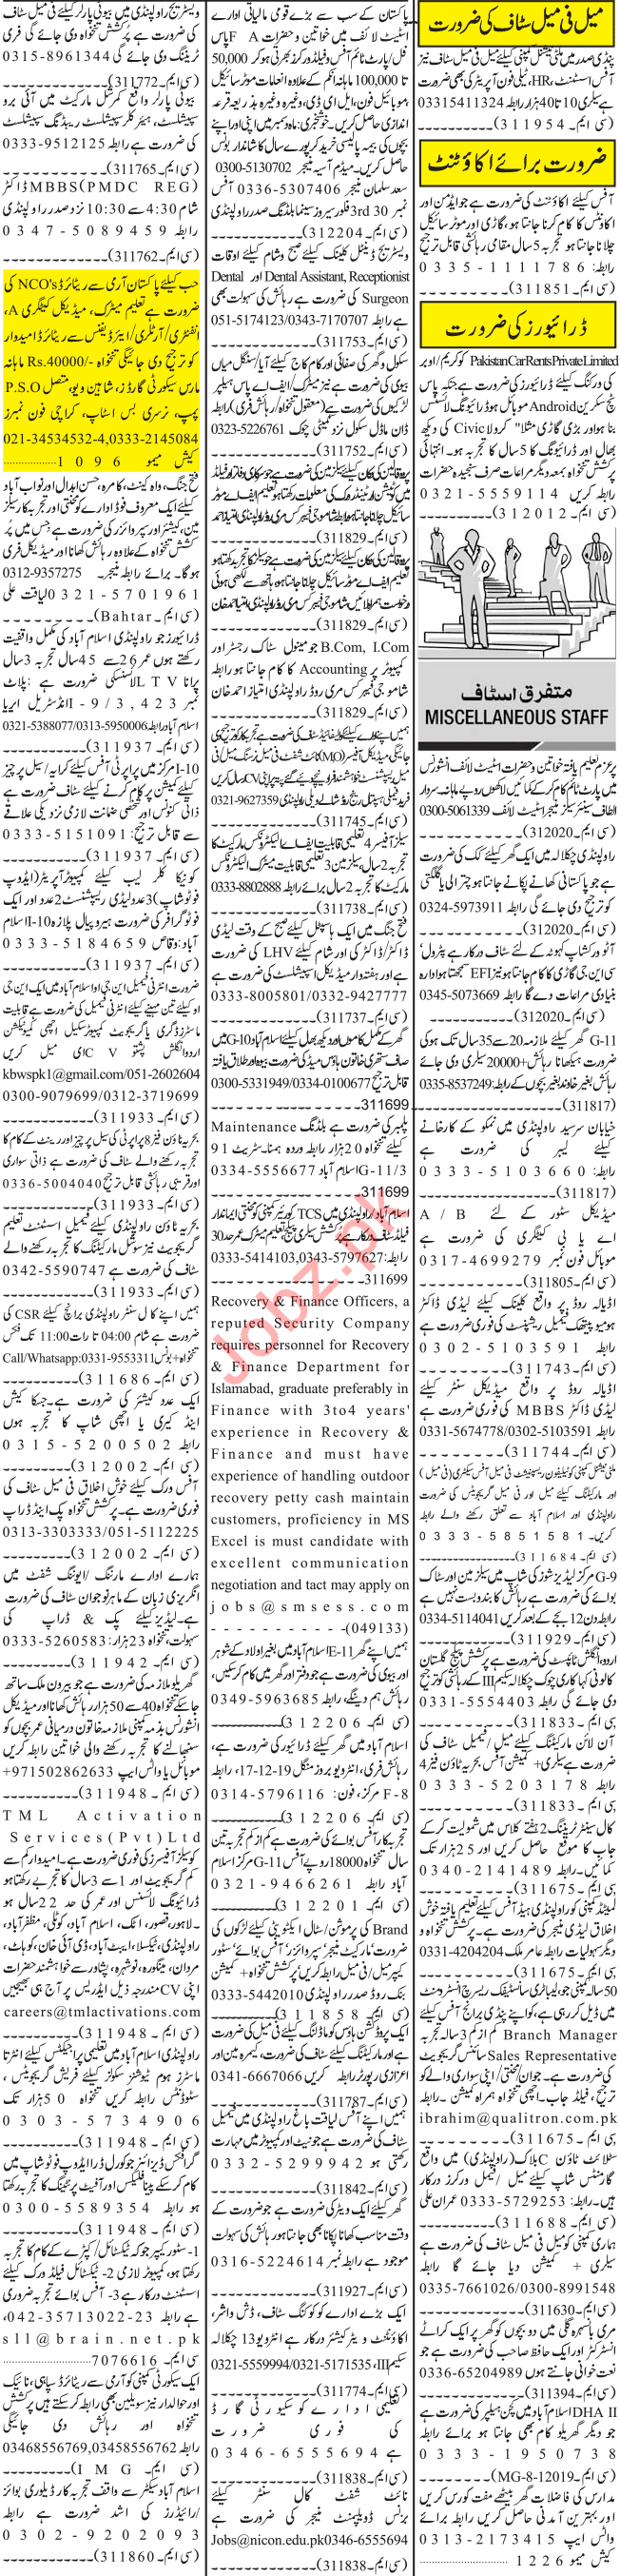 Jang Sunday Classified Ads 15th Dec 2019 for Office Staff